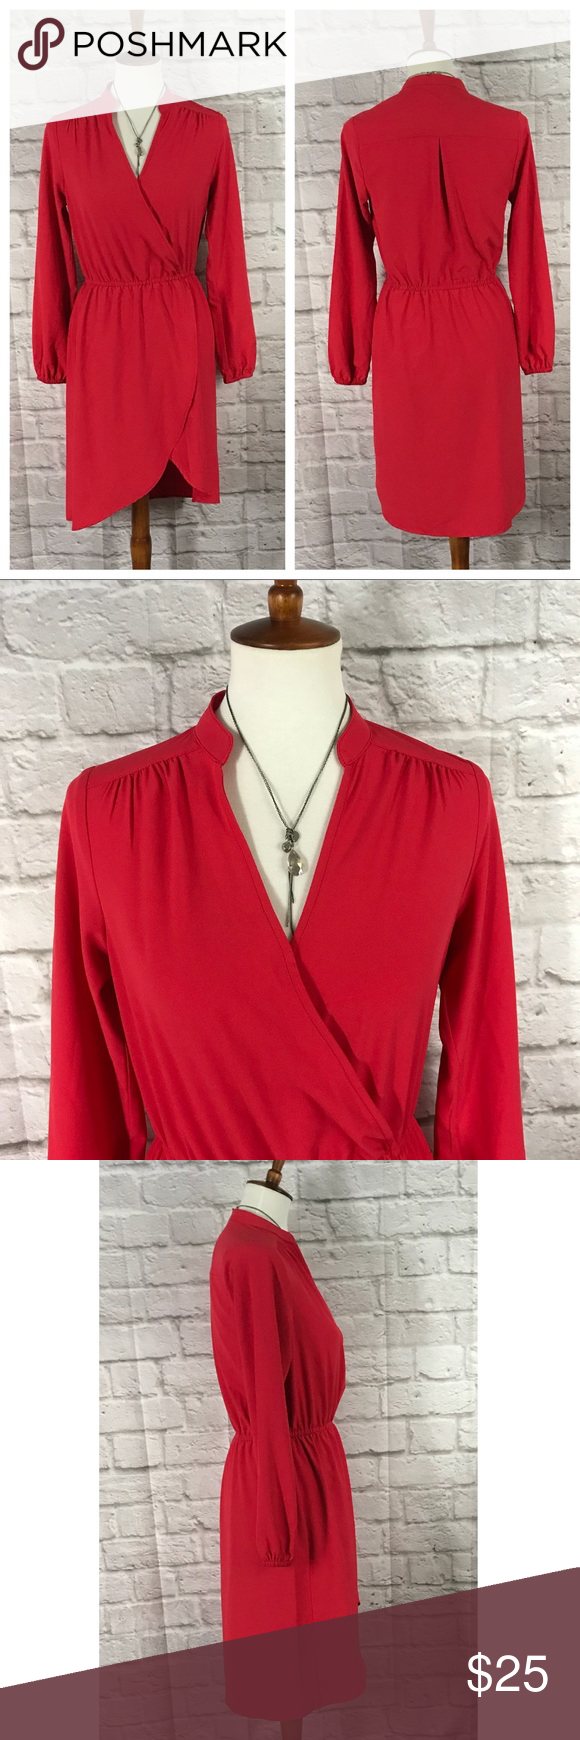 Justfab coral red long sleeve wrap dress true red red color